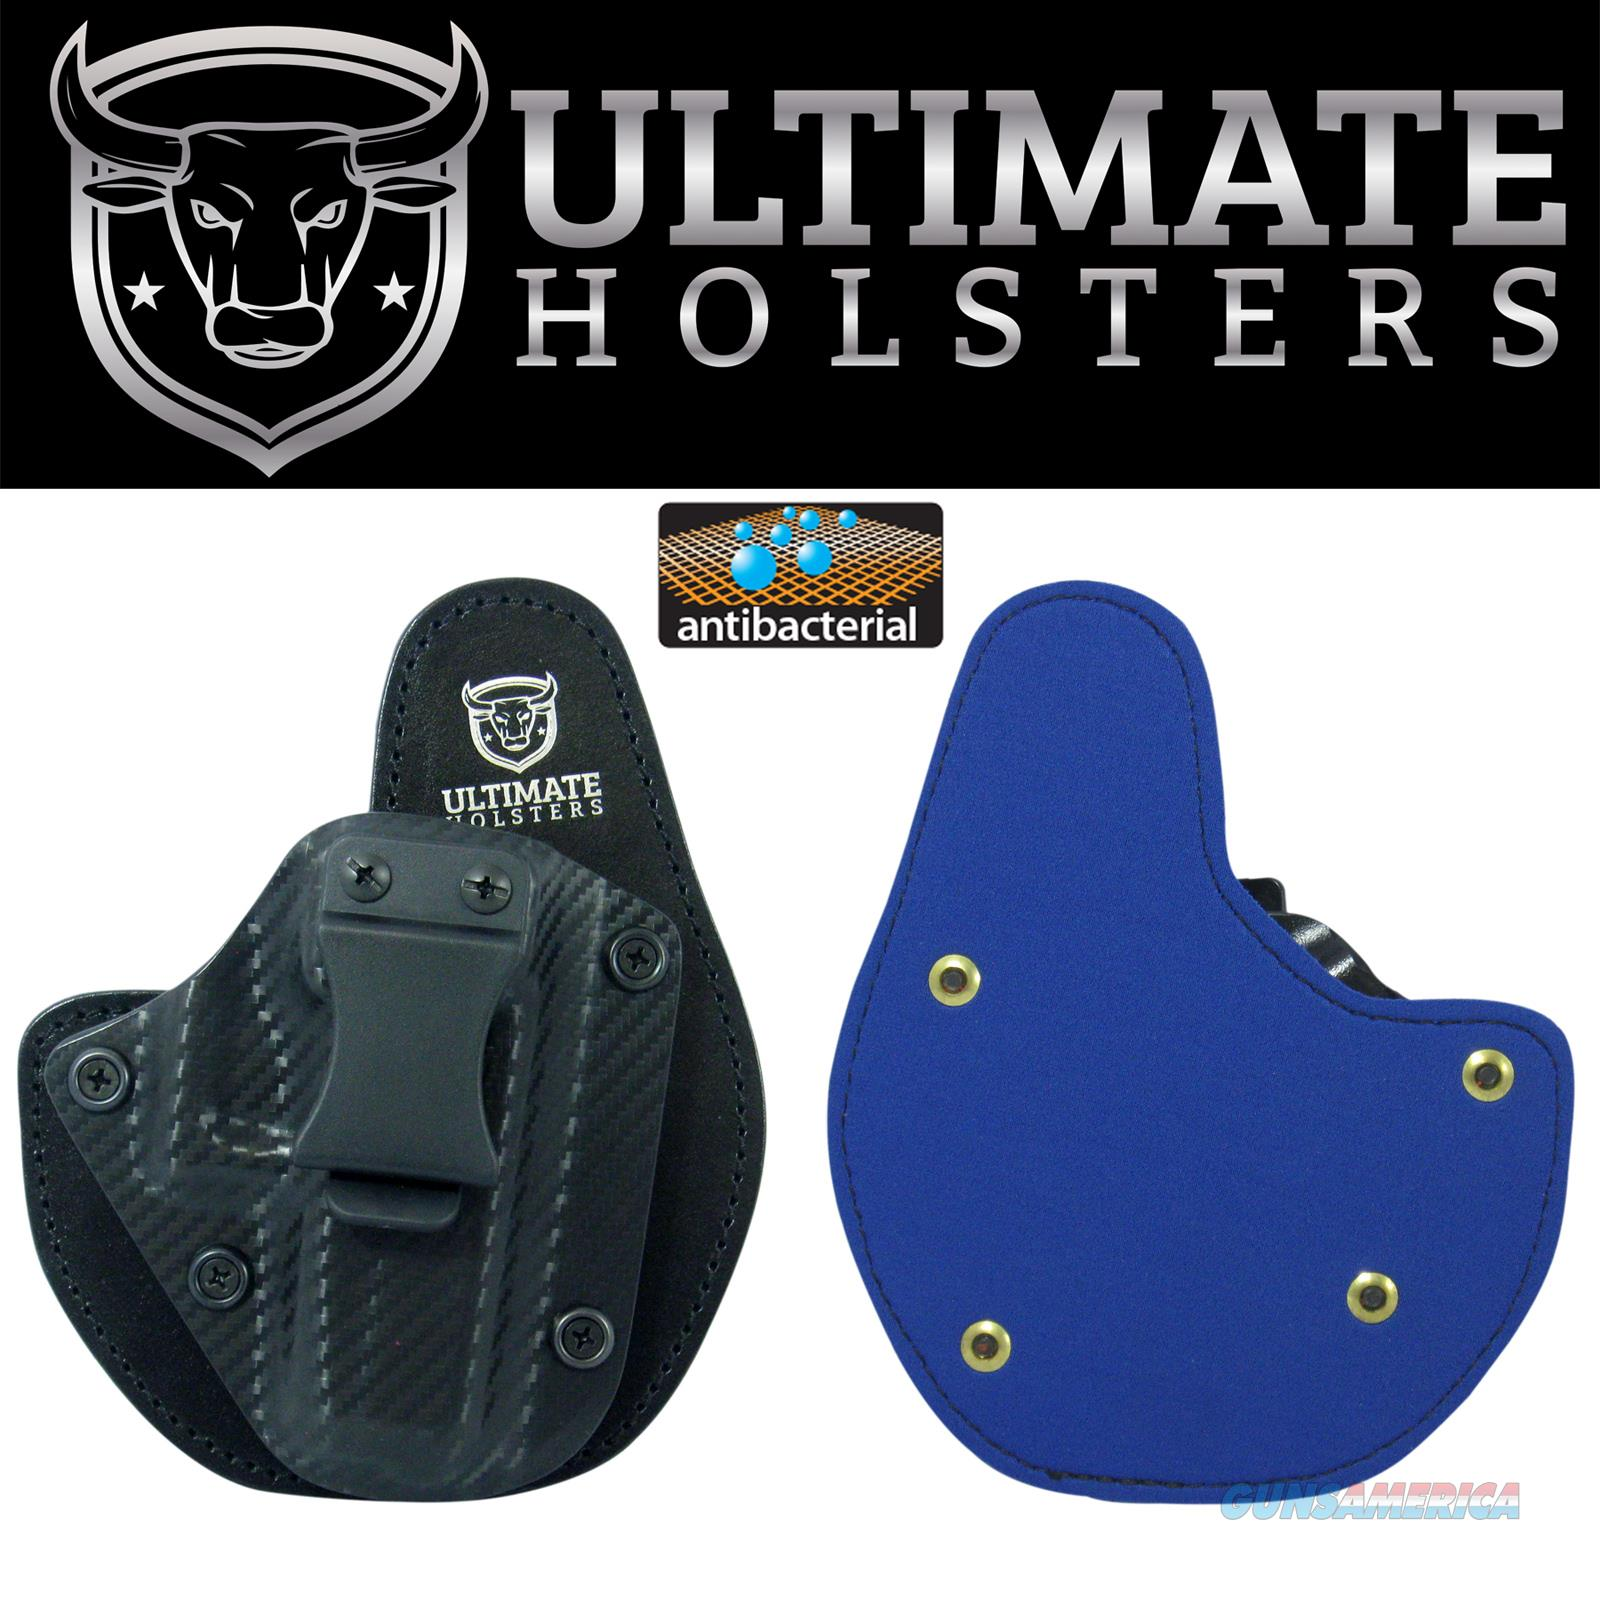 S&W Bodyguard 380 No Laser Cloud Tuck Rapid Hybrid Holster- Most Comfortable Holster- Antimicrobial Padding   Non-Guns > Holsters and Gunleather > Concealed Carry